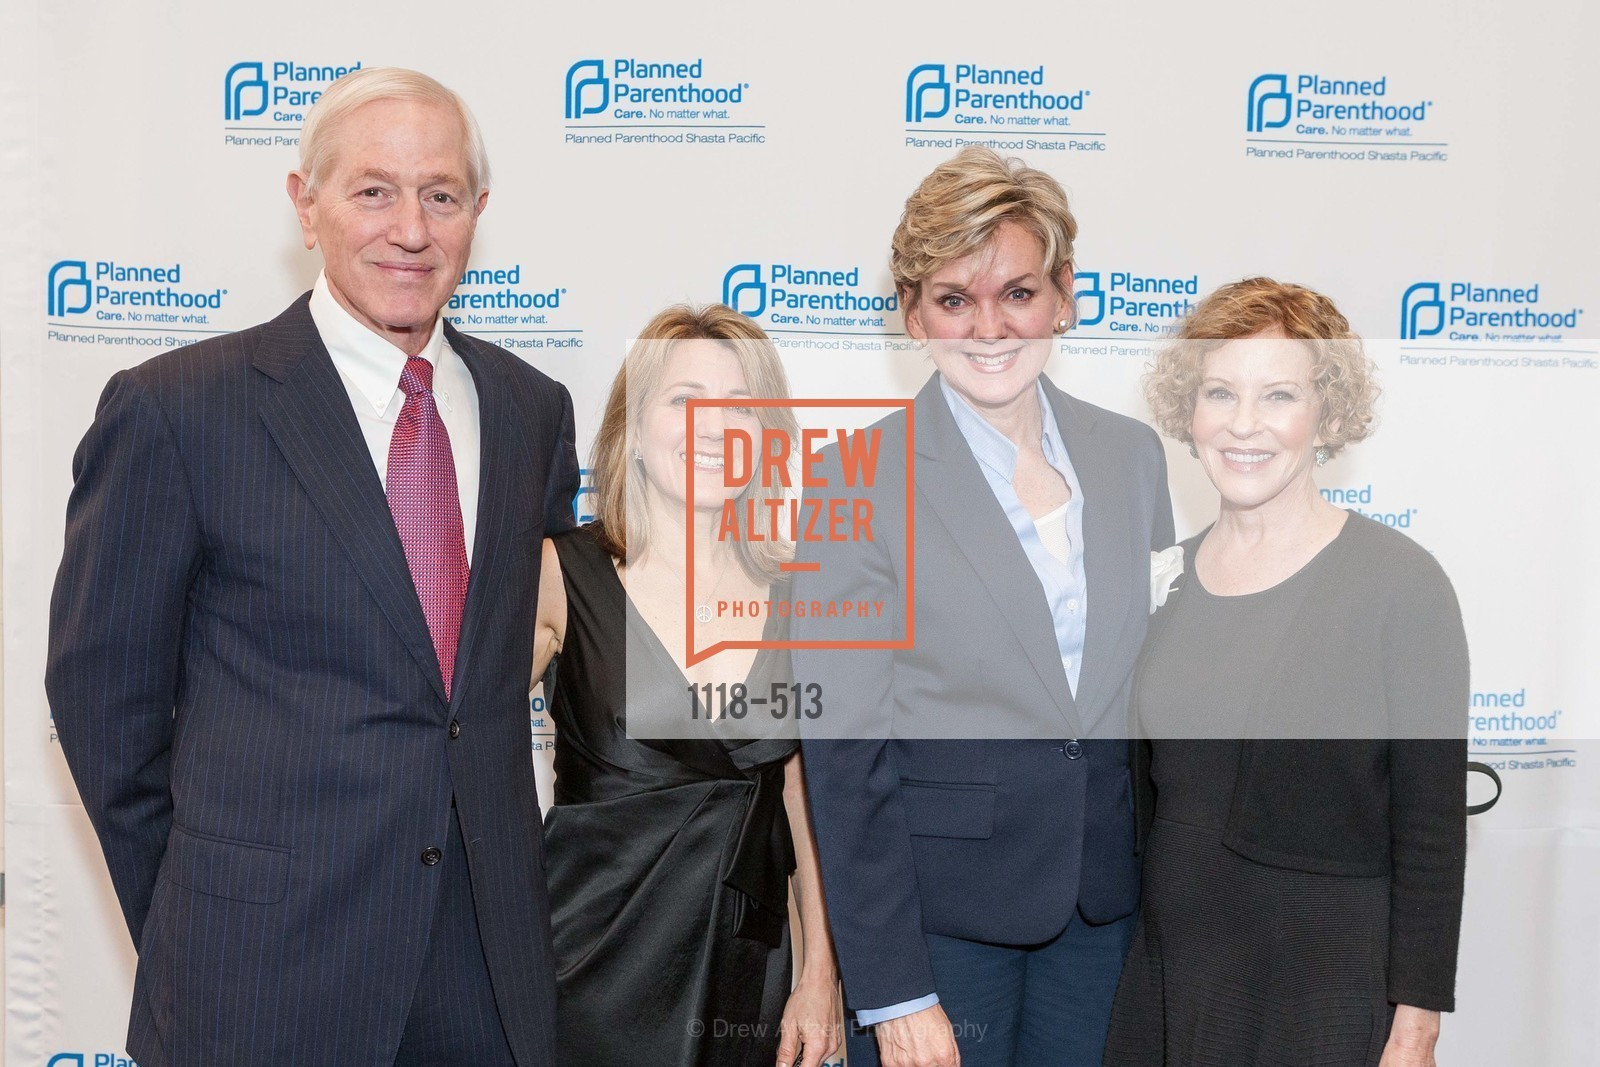 Dick Wollack, Marlene Saritzky, Jennifer Granholm, Sue Wollack, PLANNED PARENTHOOD SHASTA PACIFIC Presents  Acts of Courage, US. US, April 10th, 2014,Drew Altizer, Drew Altizer Photography, full-service agency, private events, San Francisco photographer, photographer california